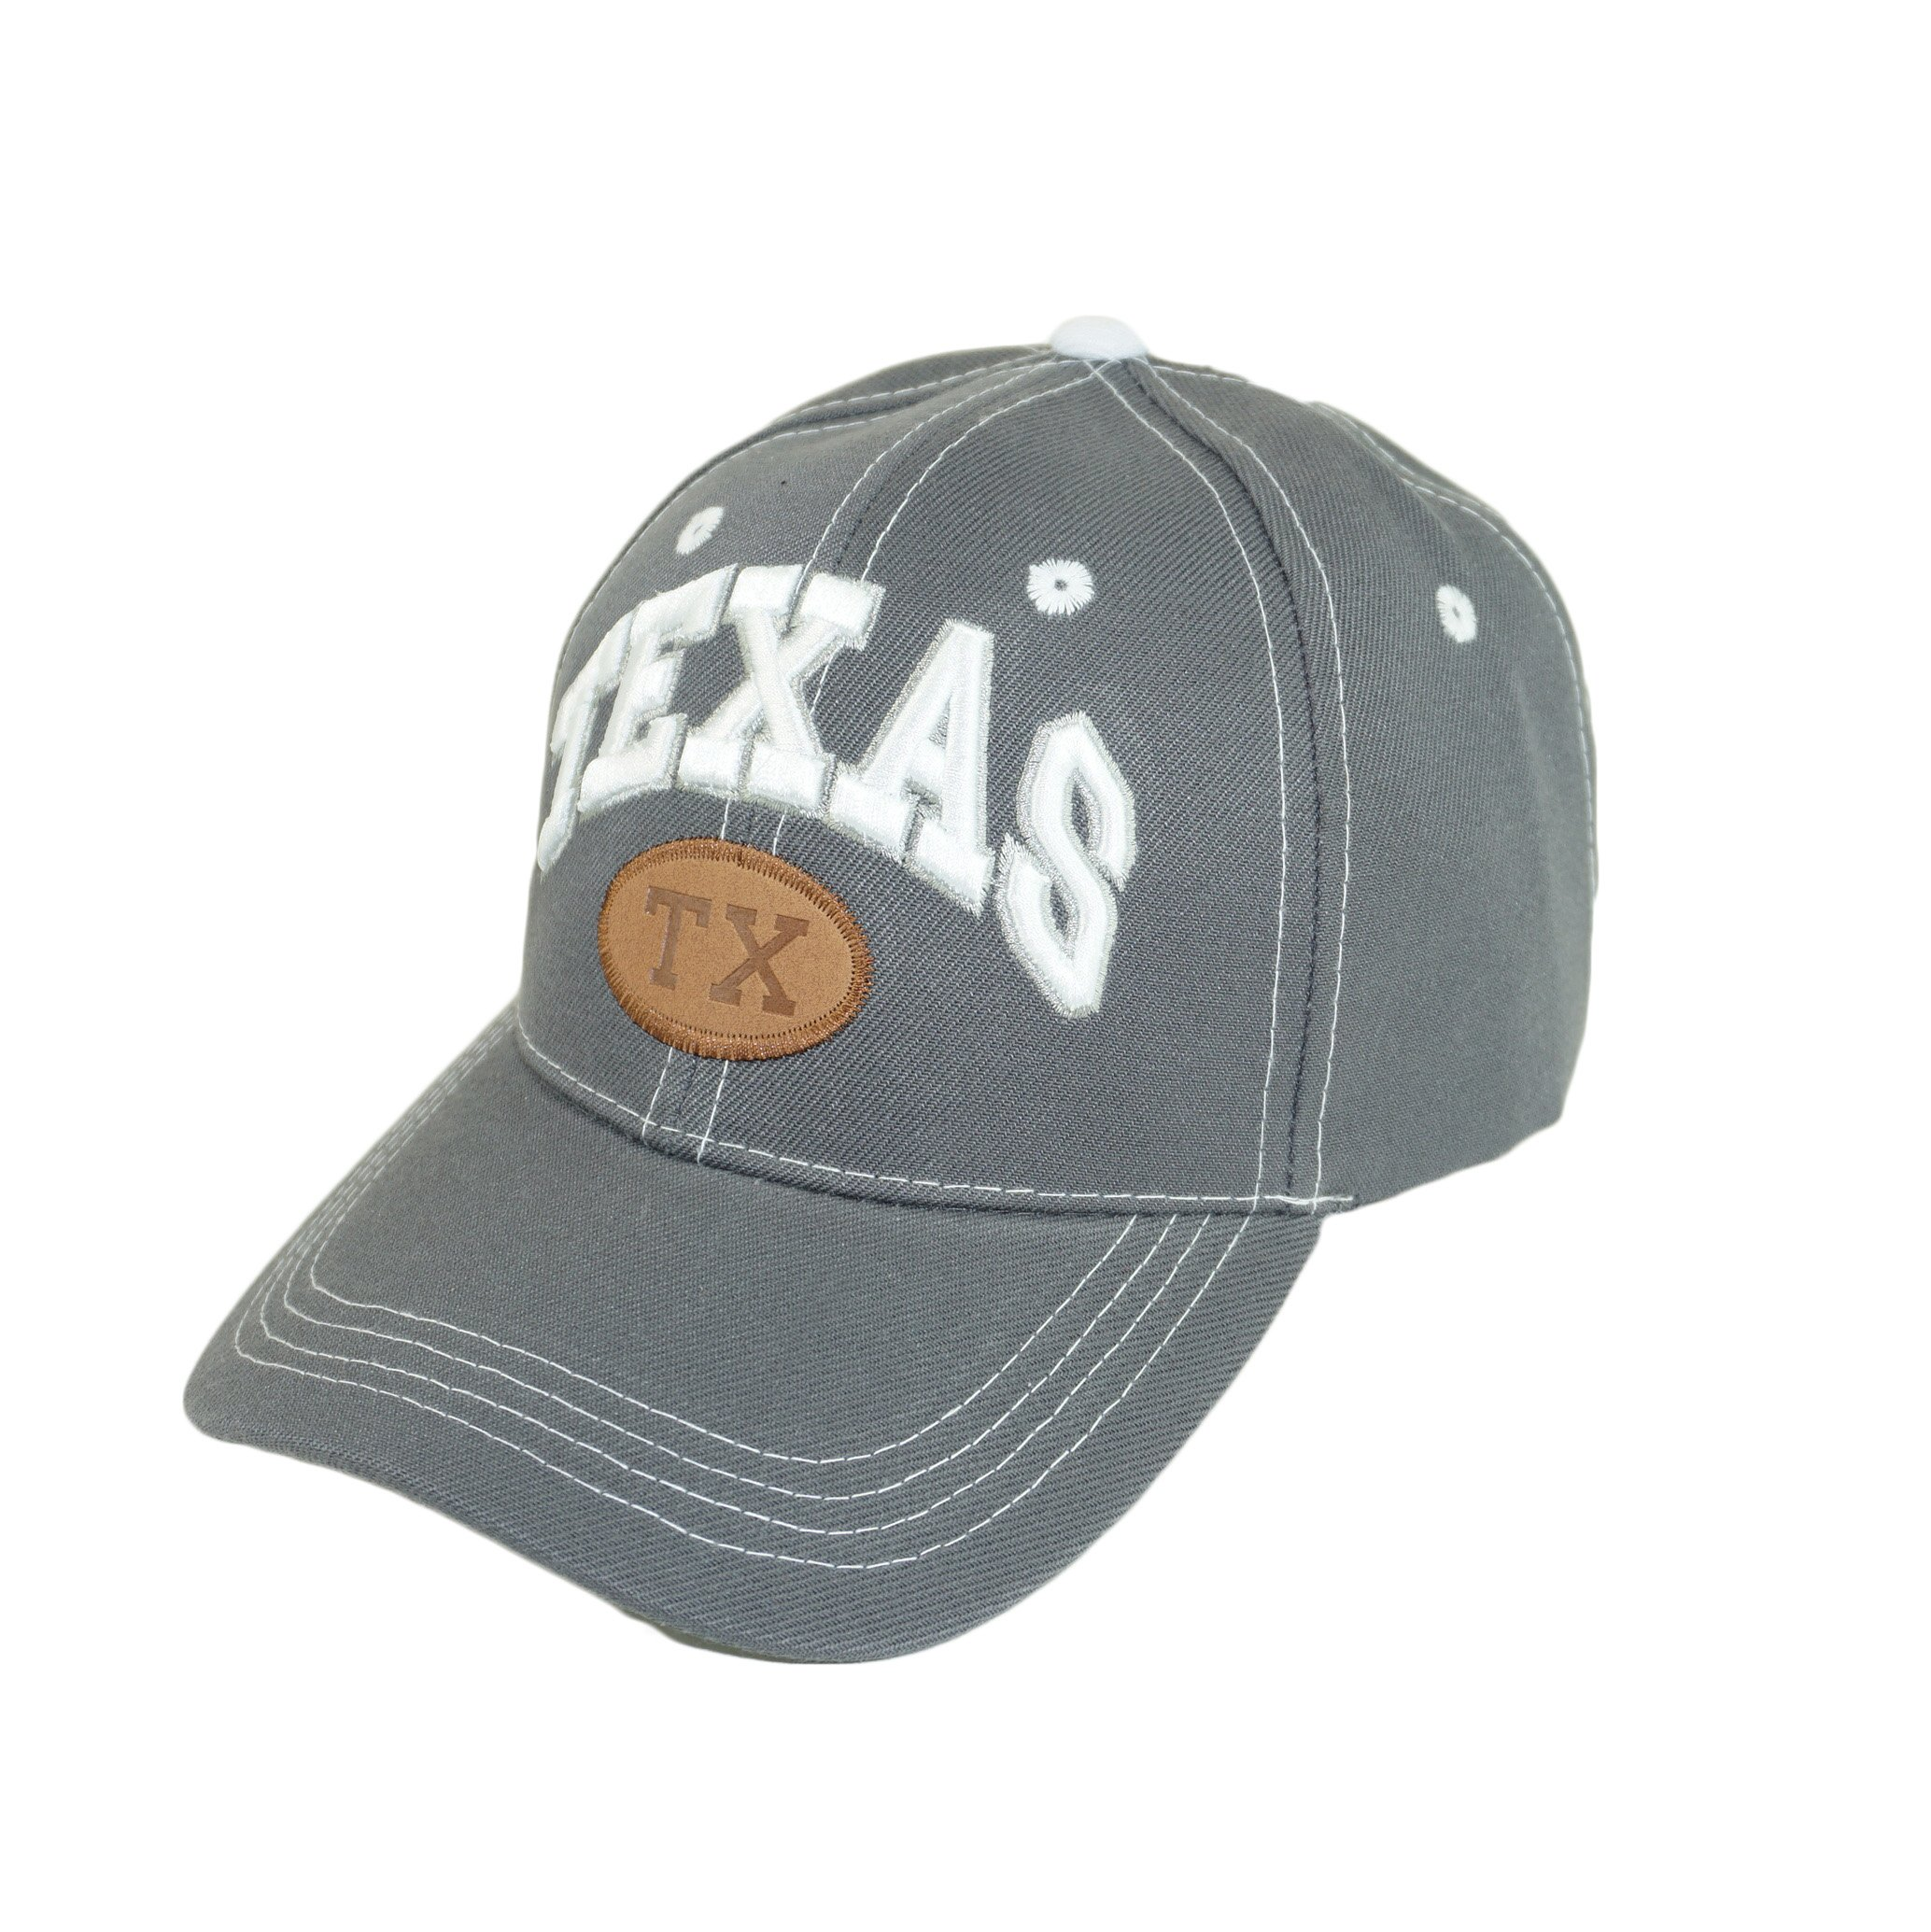 Bingoo Texas State Embroidery Hat Adjustable Texas Independent Lone Star Baseball Cap (Gray)